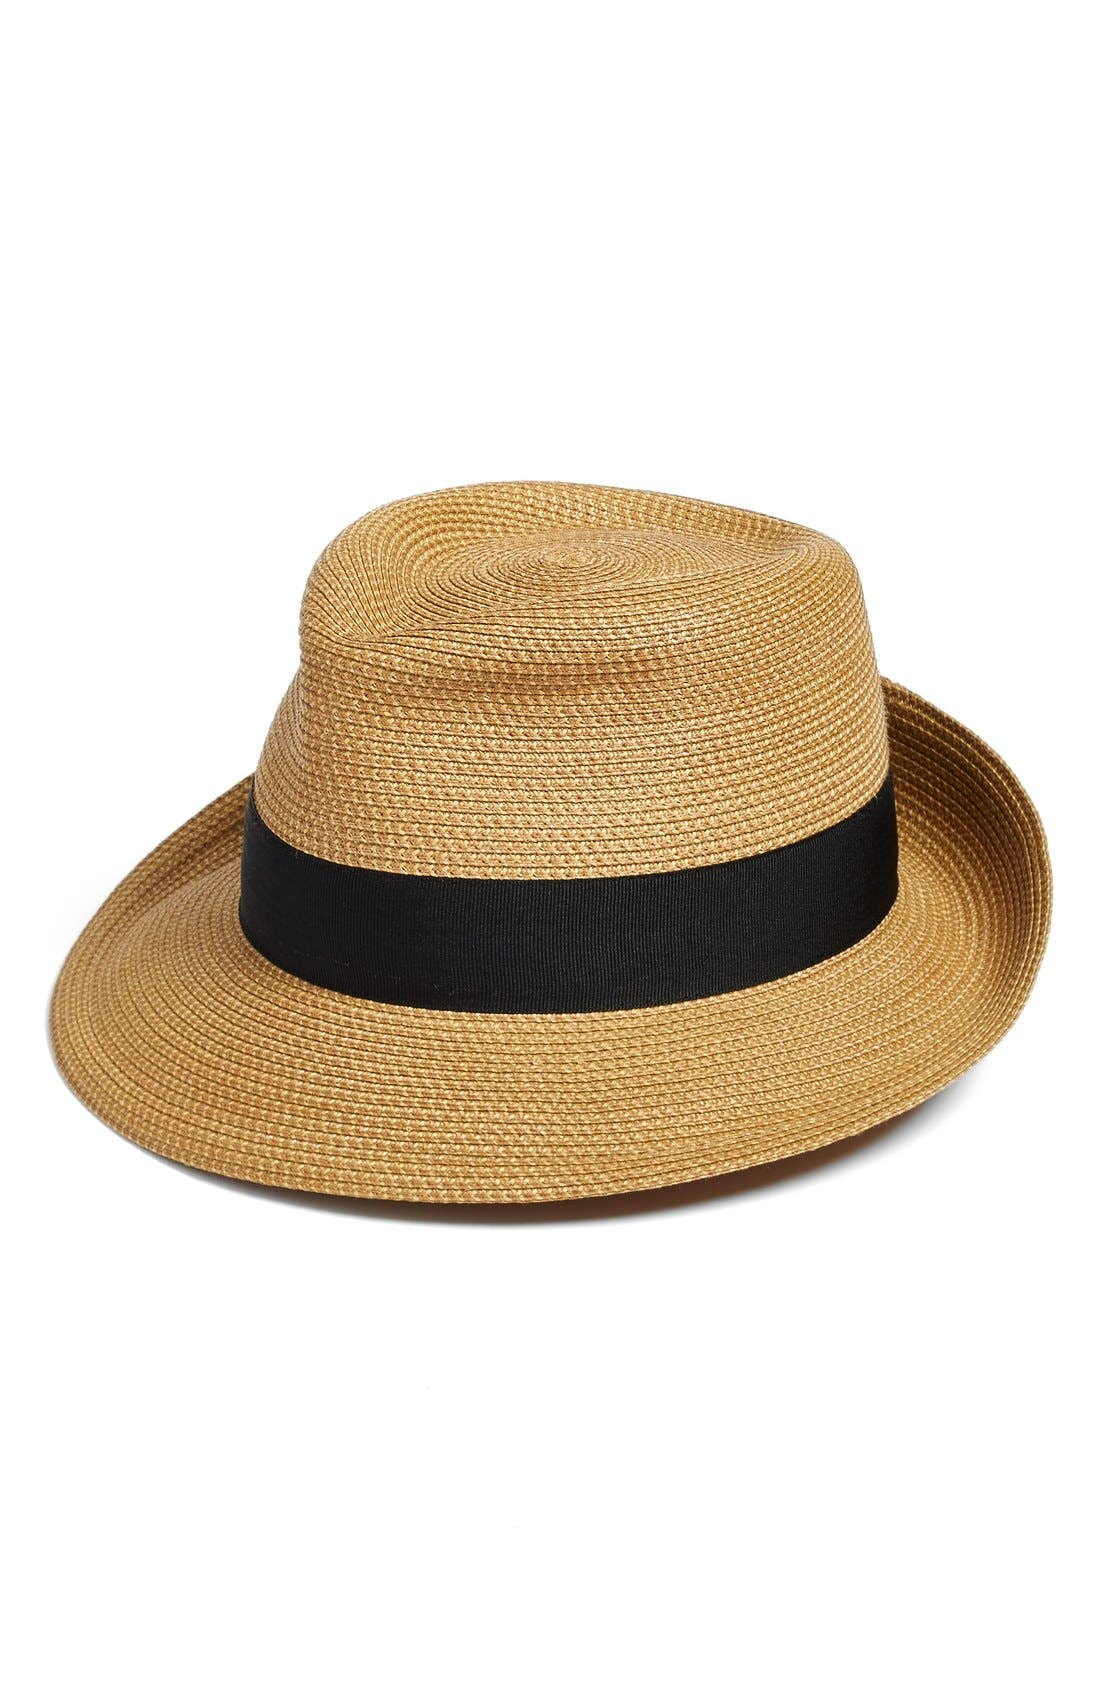 'Classic' Squishee<sup>®</sup> Packable Fedora Sun Hat,                             Main thumbnail 1, color,                             NATURAL/ BLACK